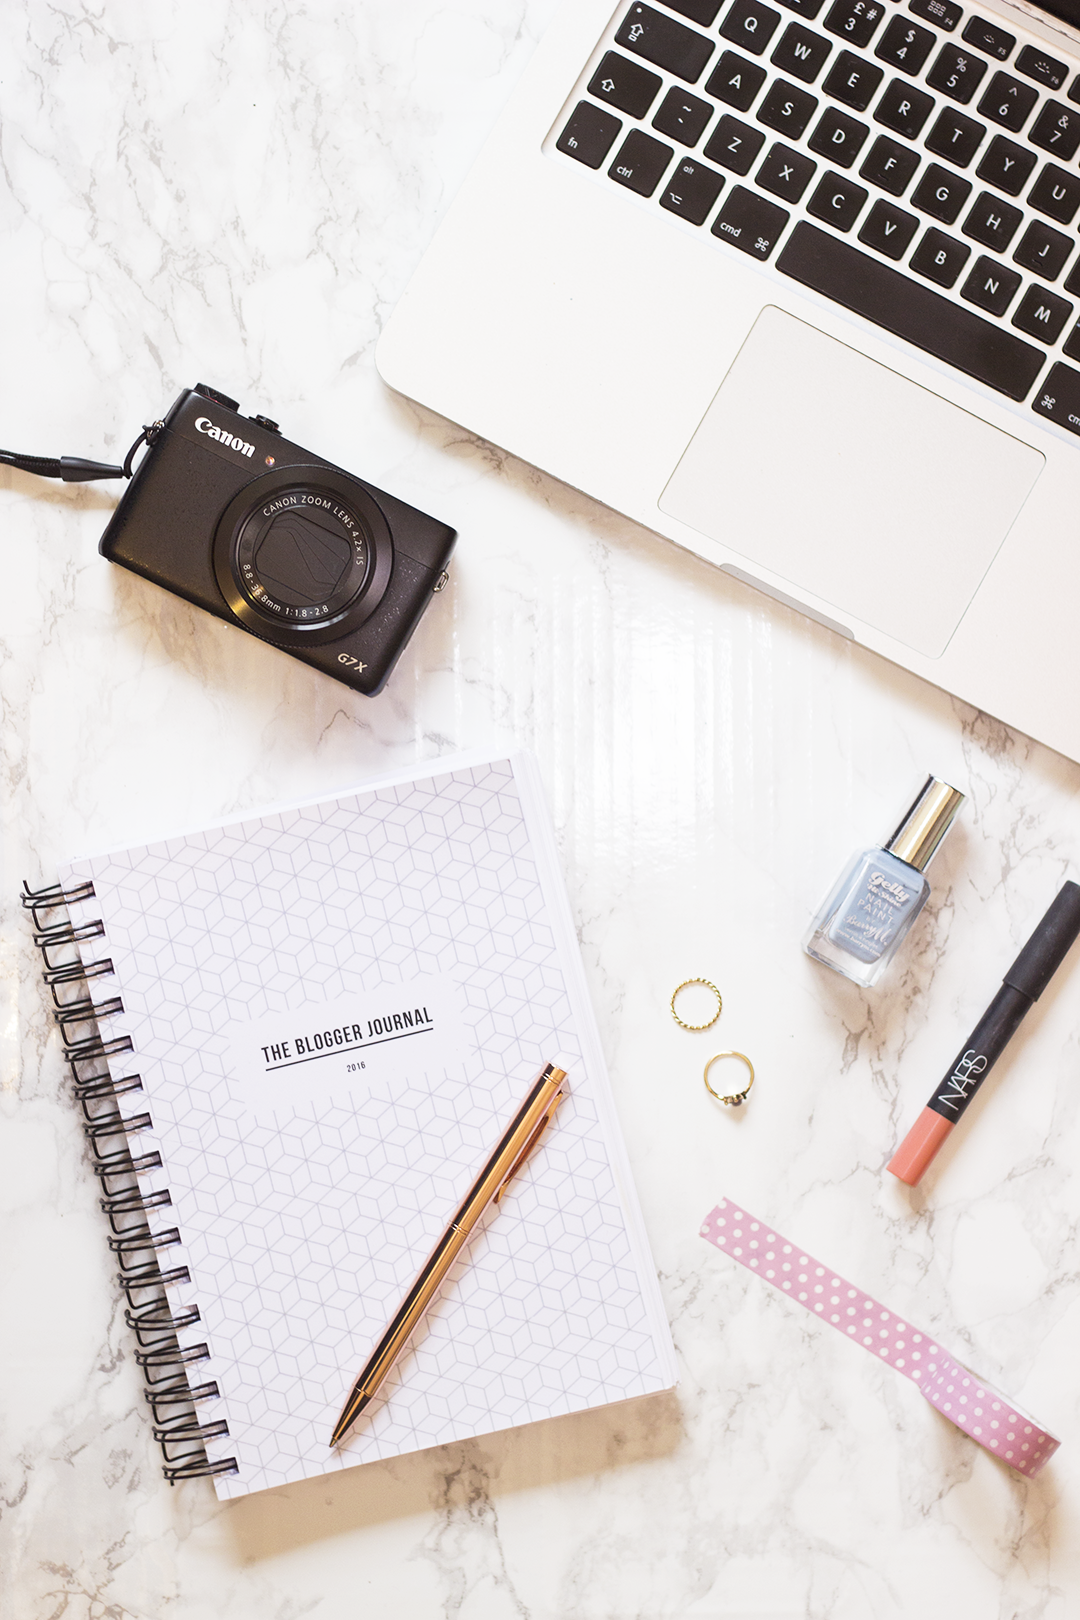 Falling Back In Love With Blogging